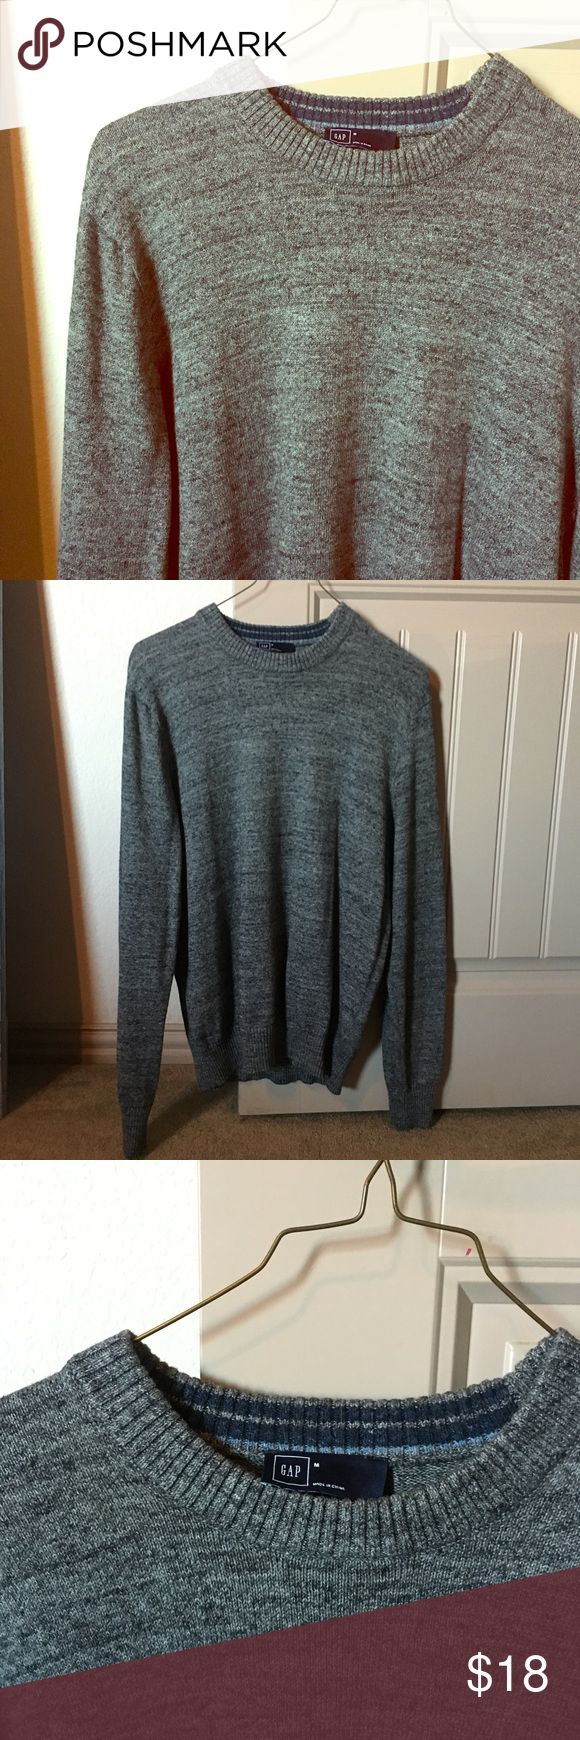 Men's Crewneck Sweater Nice dark heather gray crewneck sweater from Gap. In excellent condition and perfect for layering in the fall/winter! GAP Sweaters Crewneck